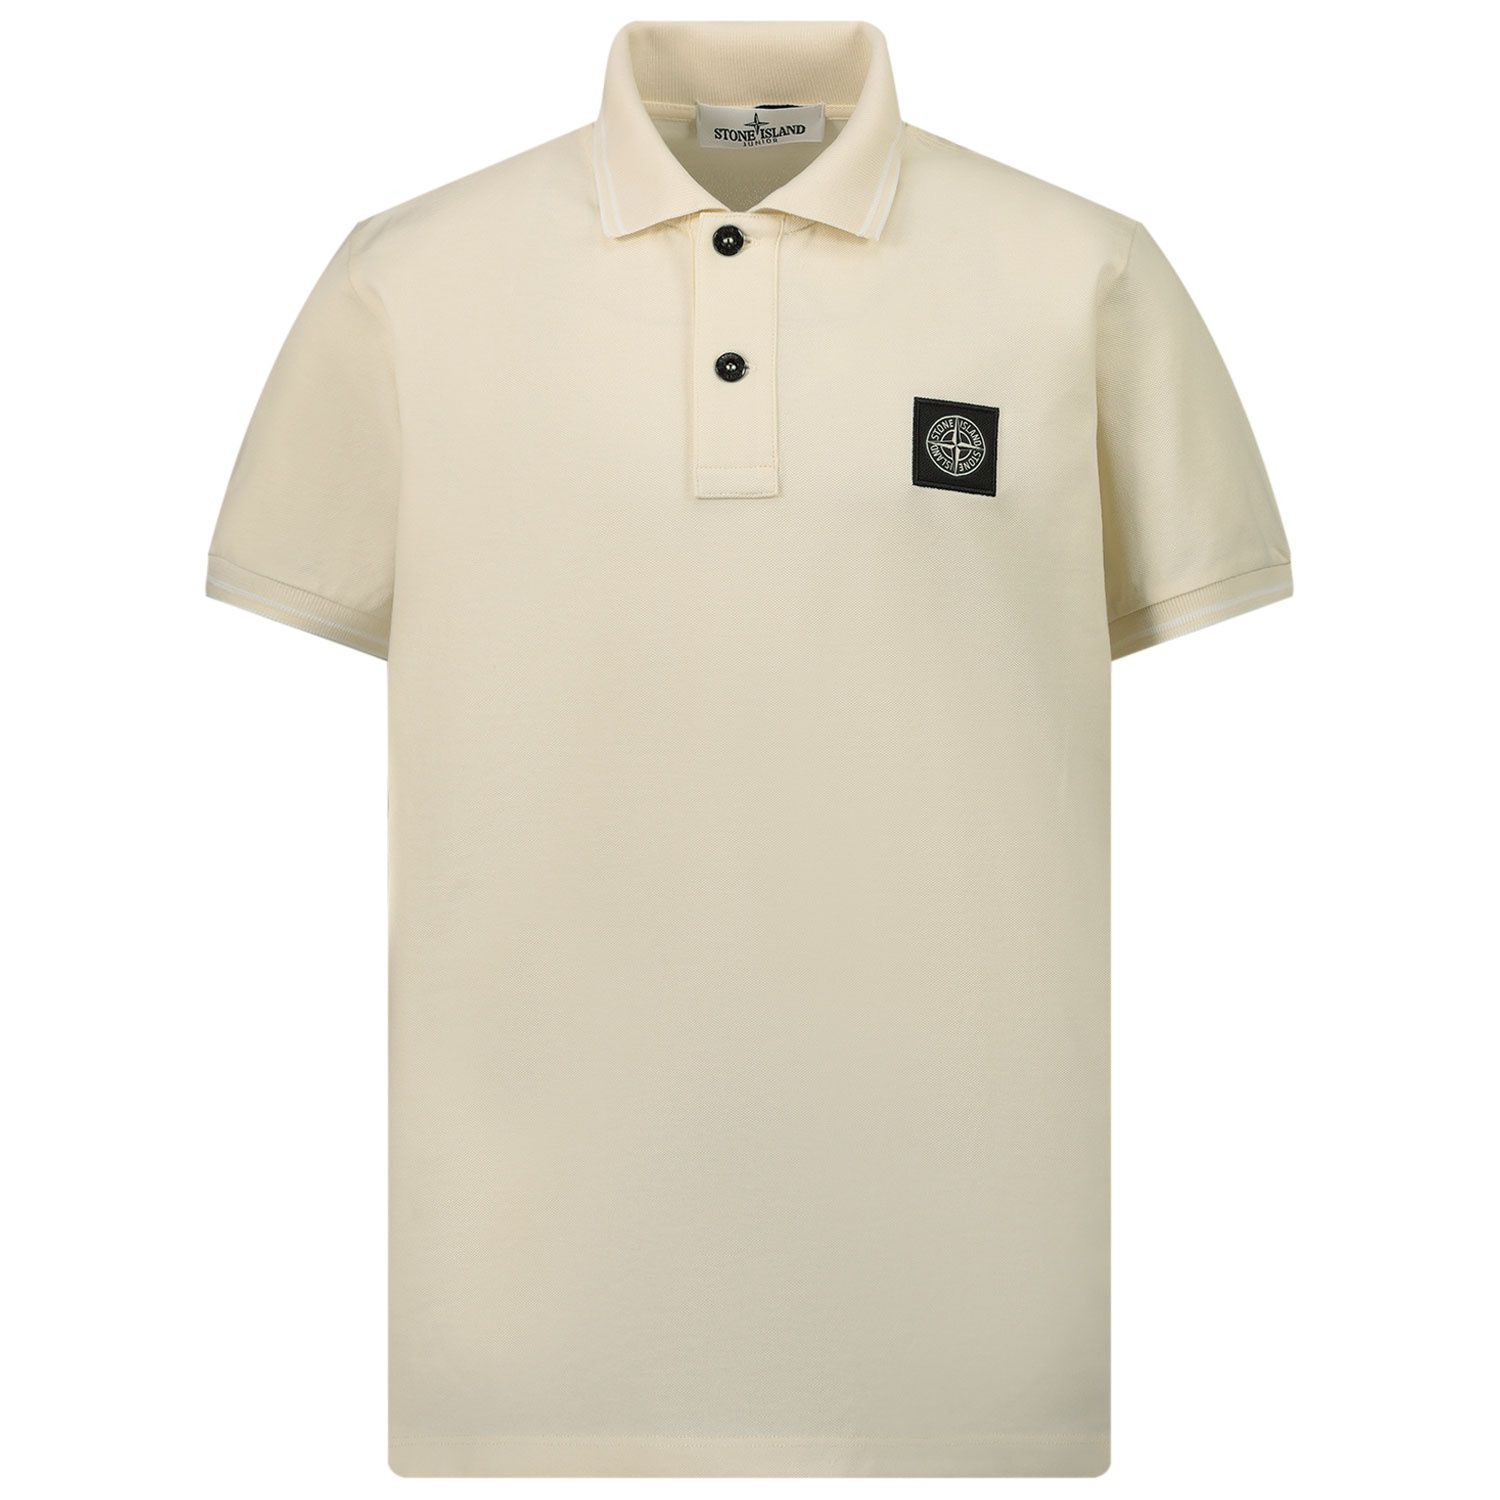 Picture of Stone Island 21348 kids polo shirt off white